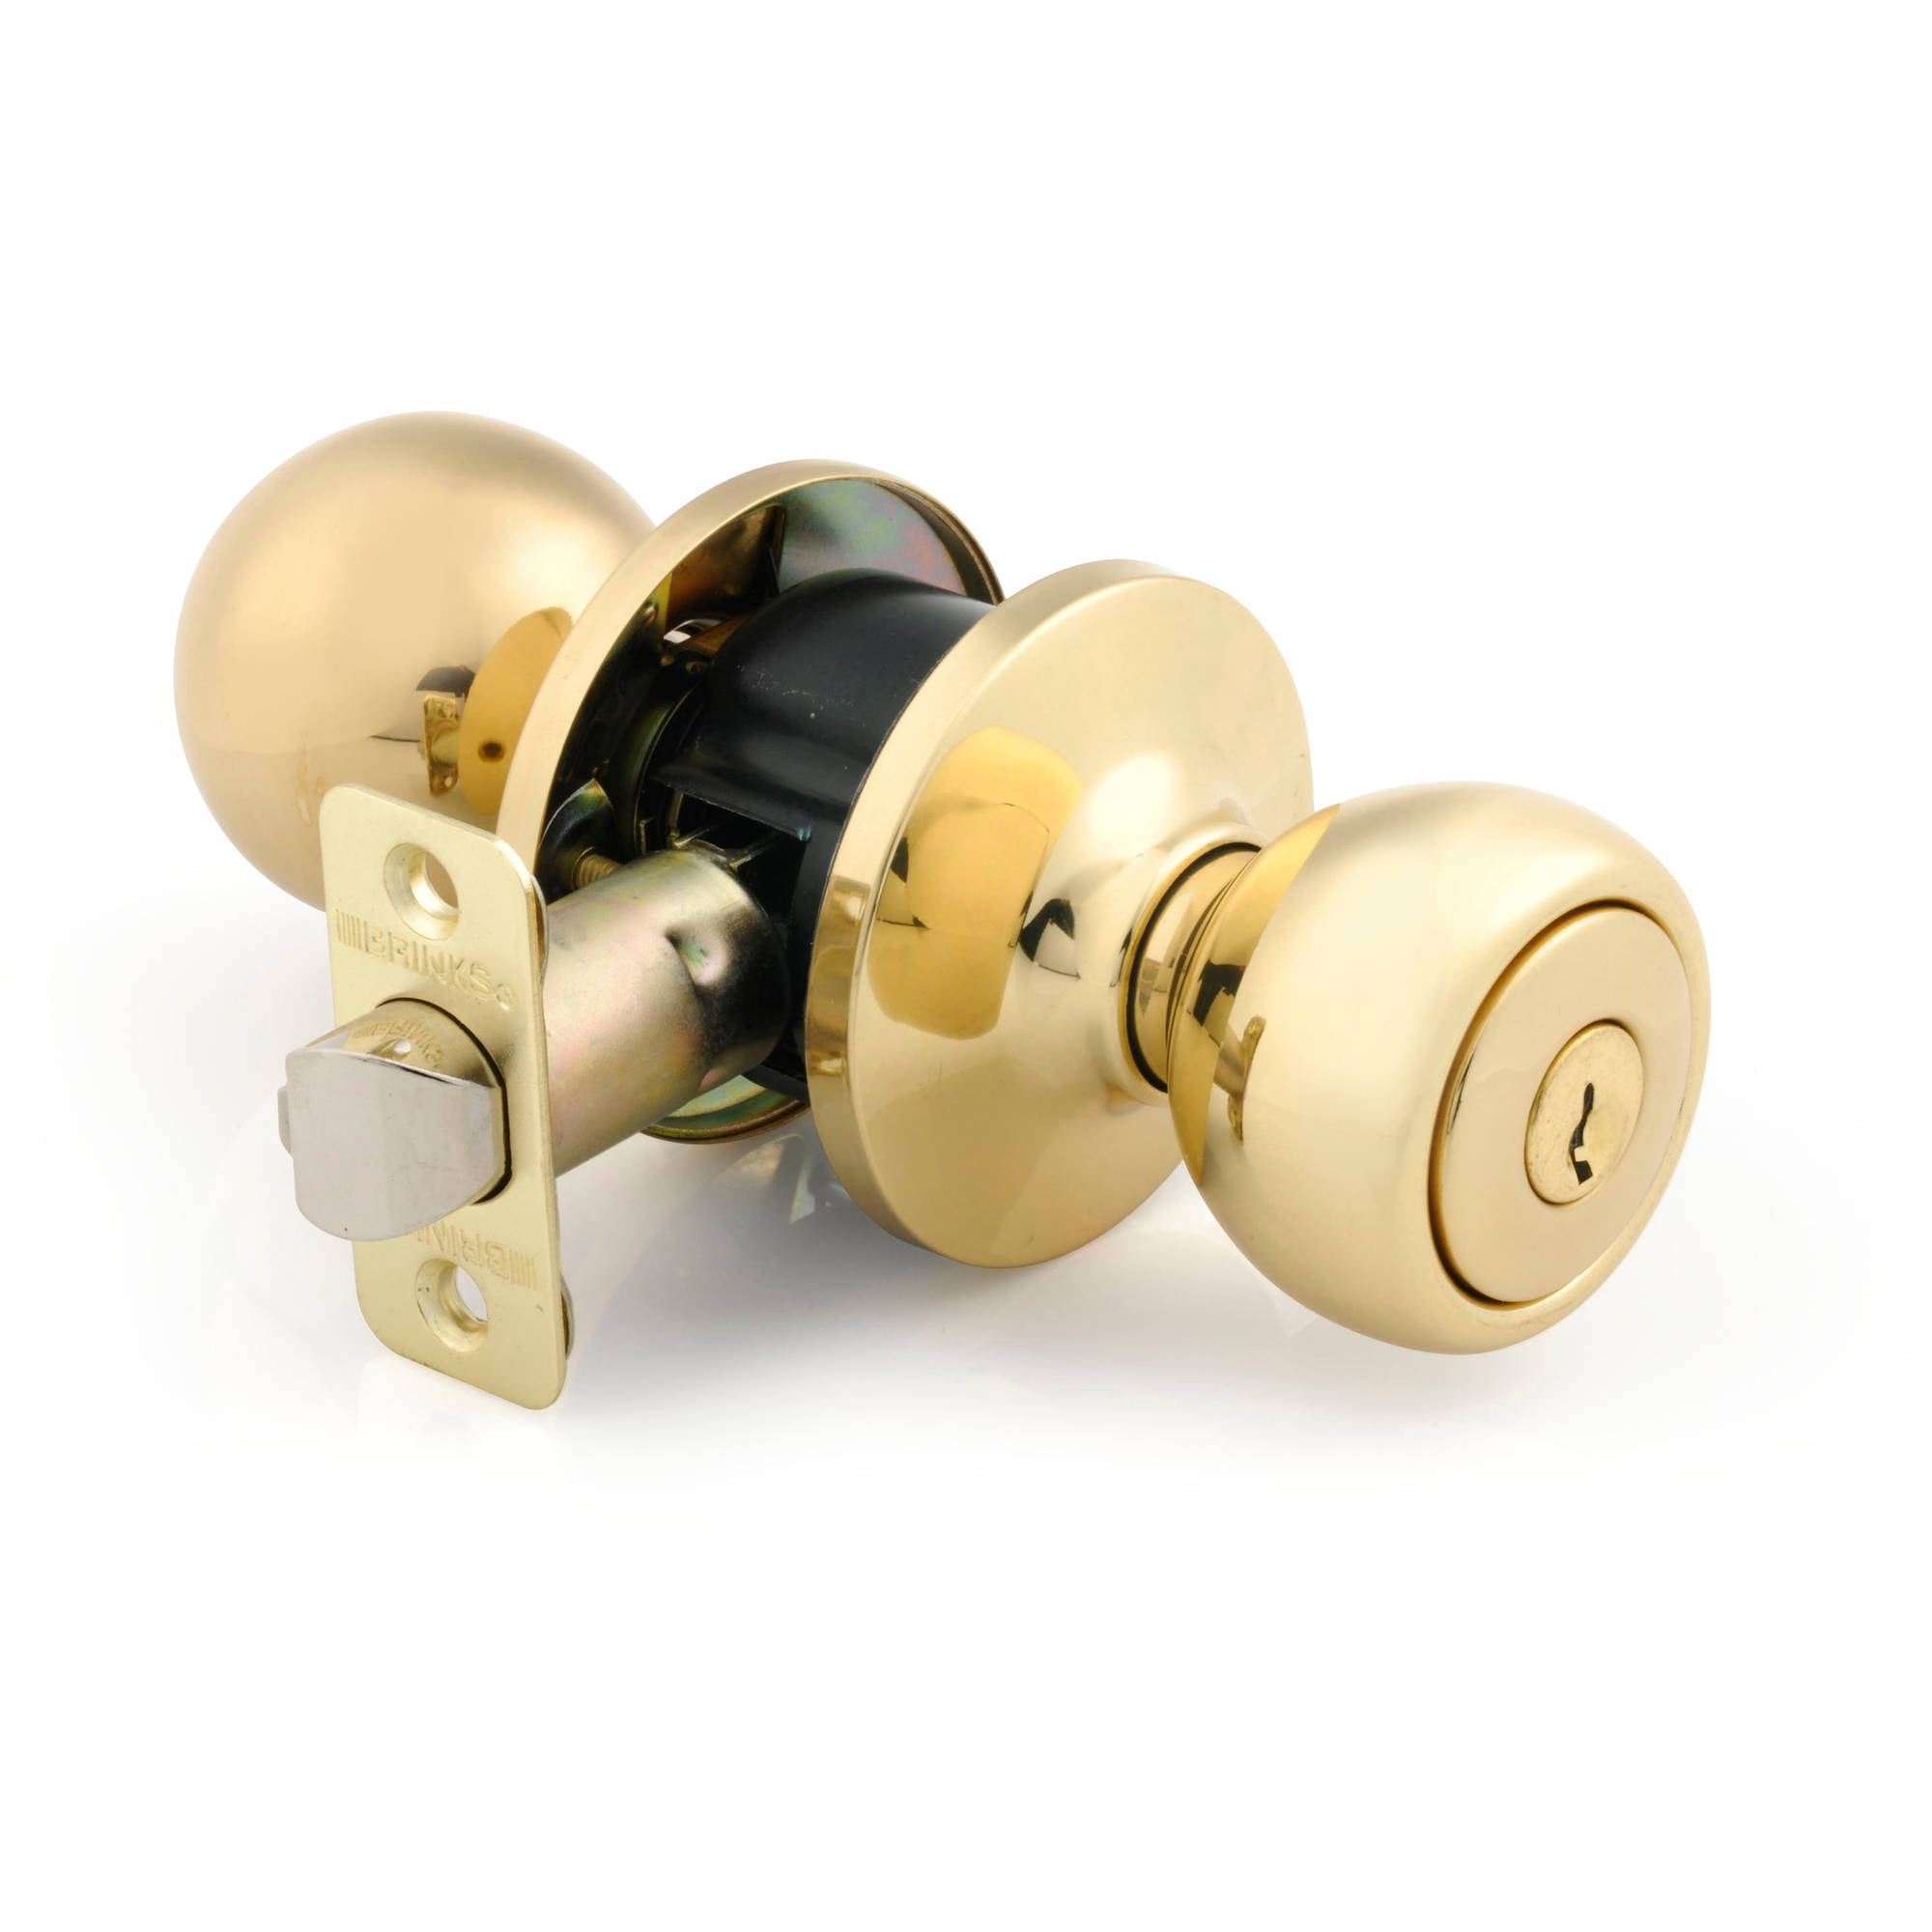 Brinku0027s Keyed Entry Ball Style Door Knob U0026 Deadbolt Combo Pack, Satin  Nickel   Walmart.com